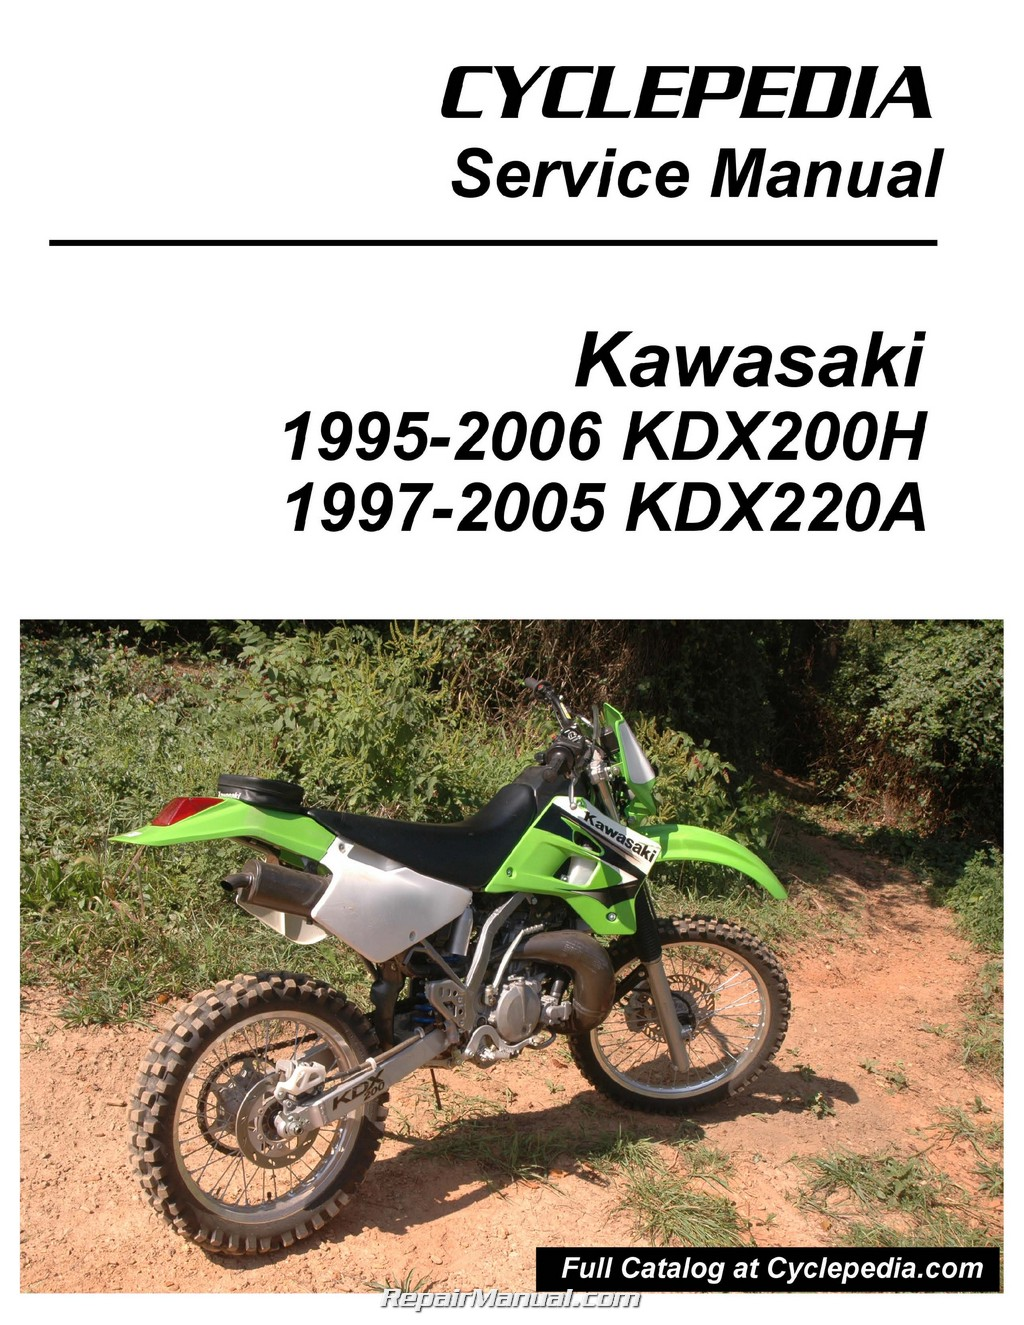 Superb Kawasaki Kdx200H Kdx220A Cyclepedia Printed Motorcycle Service Wiring Digital Resources Funapmognl